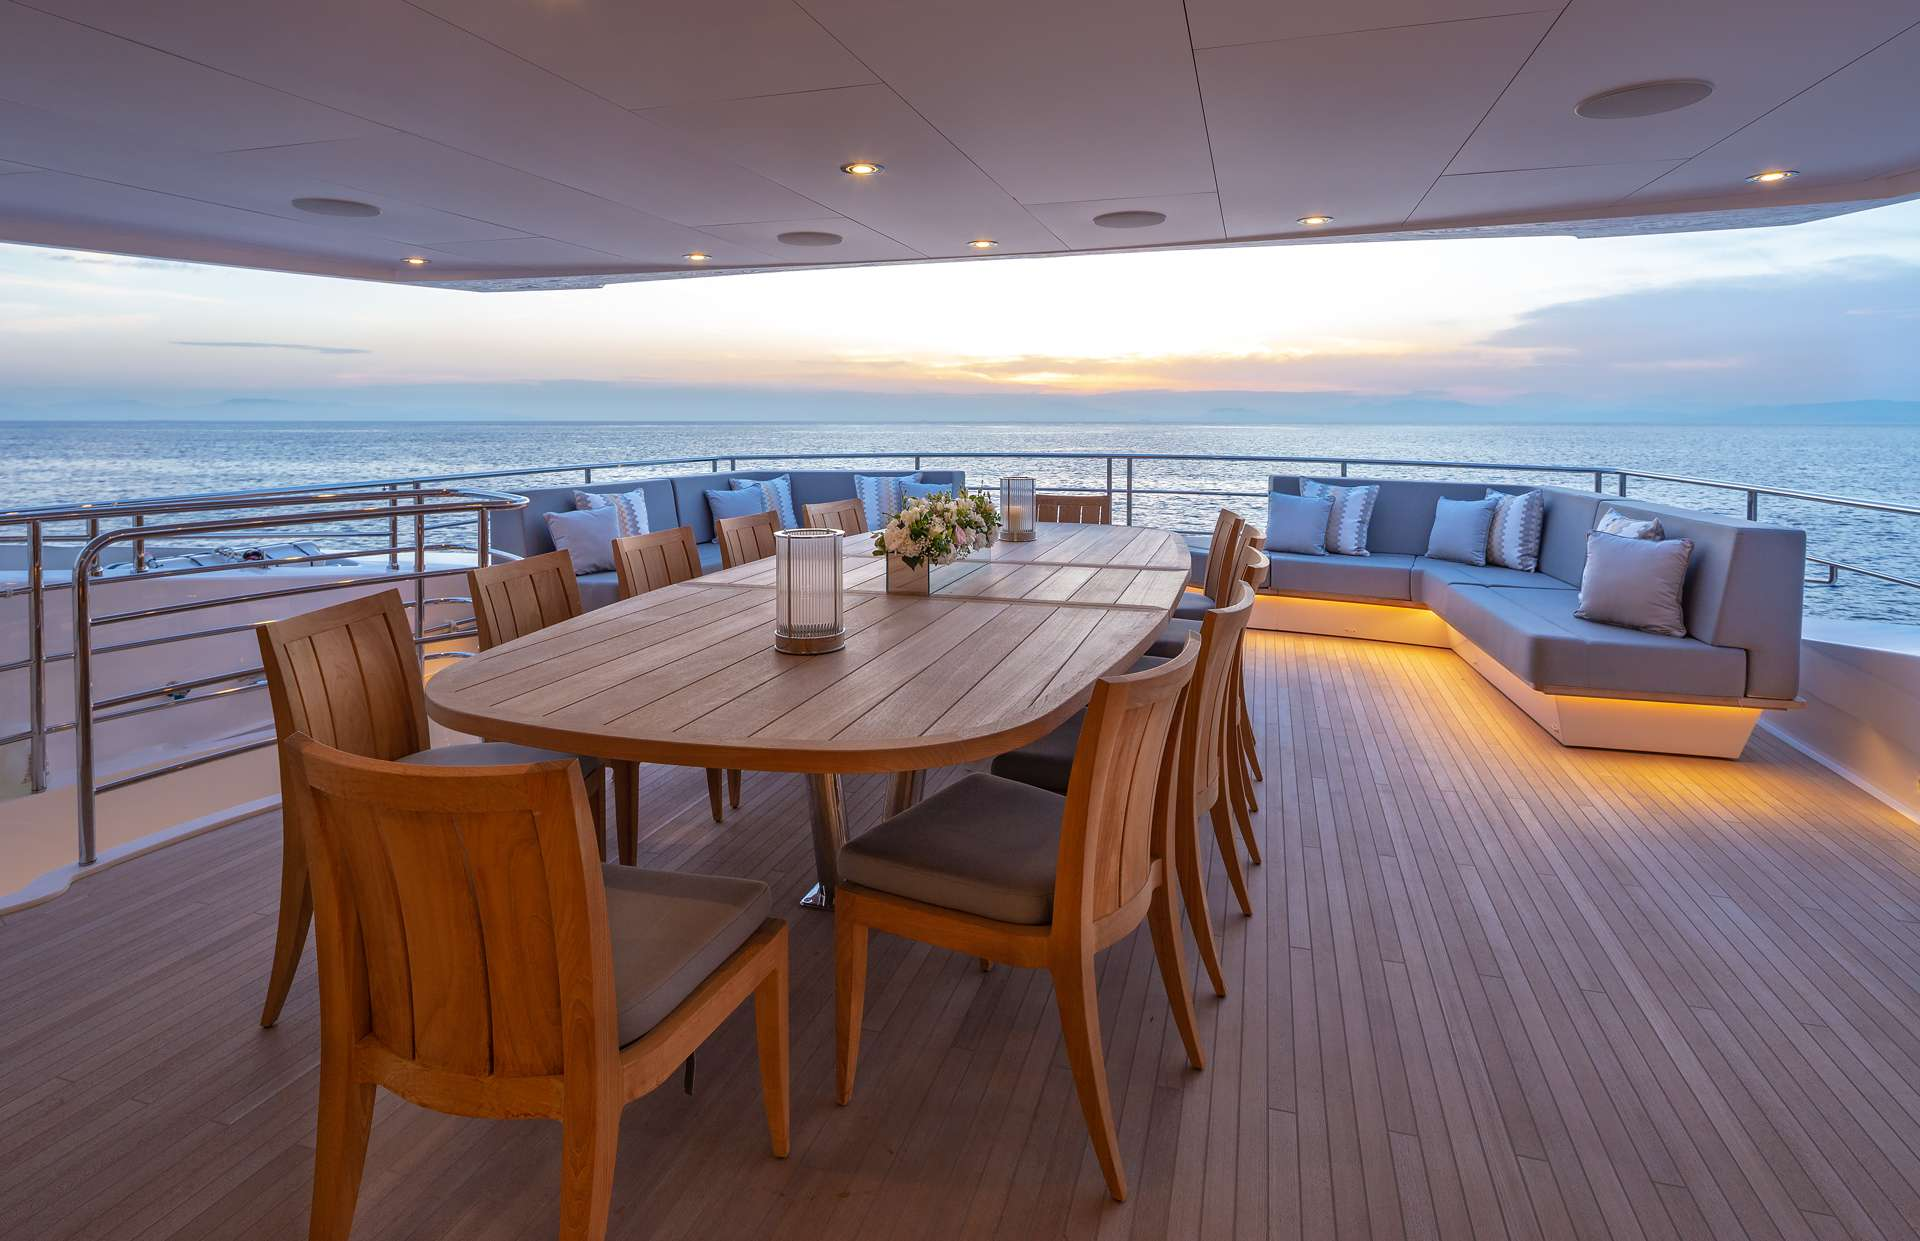 Upper deck Dining /Lounge area